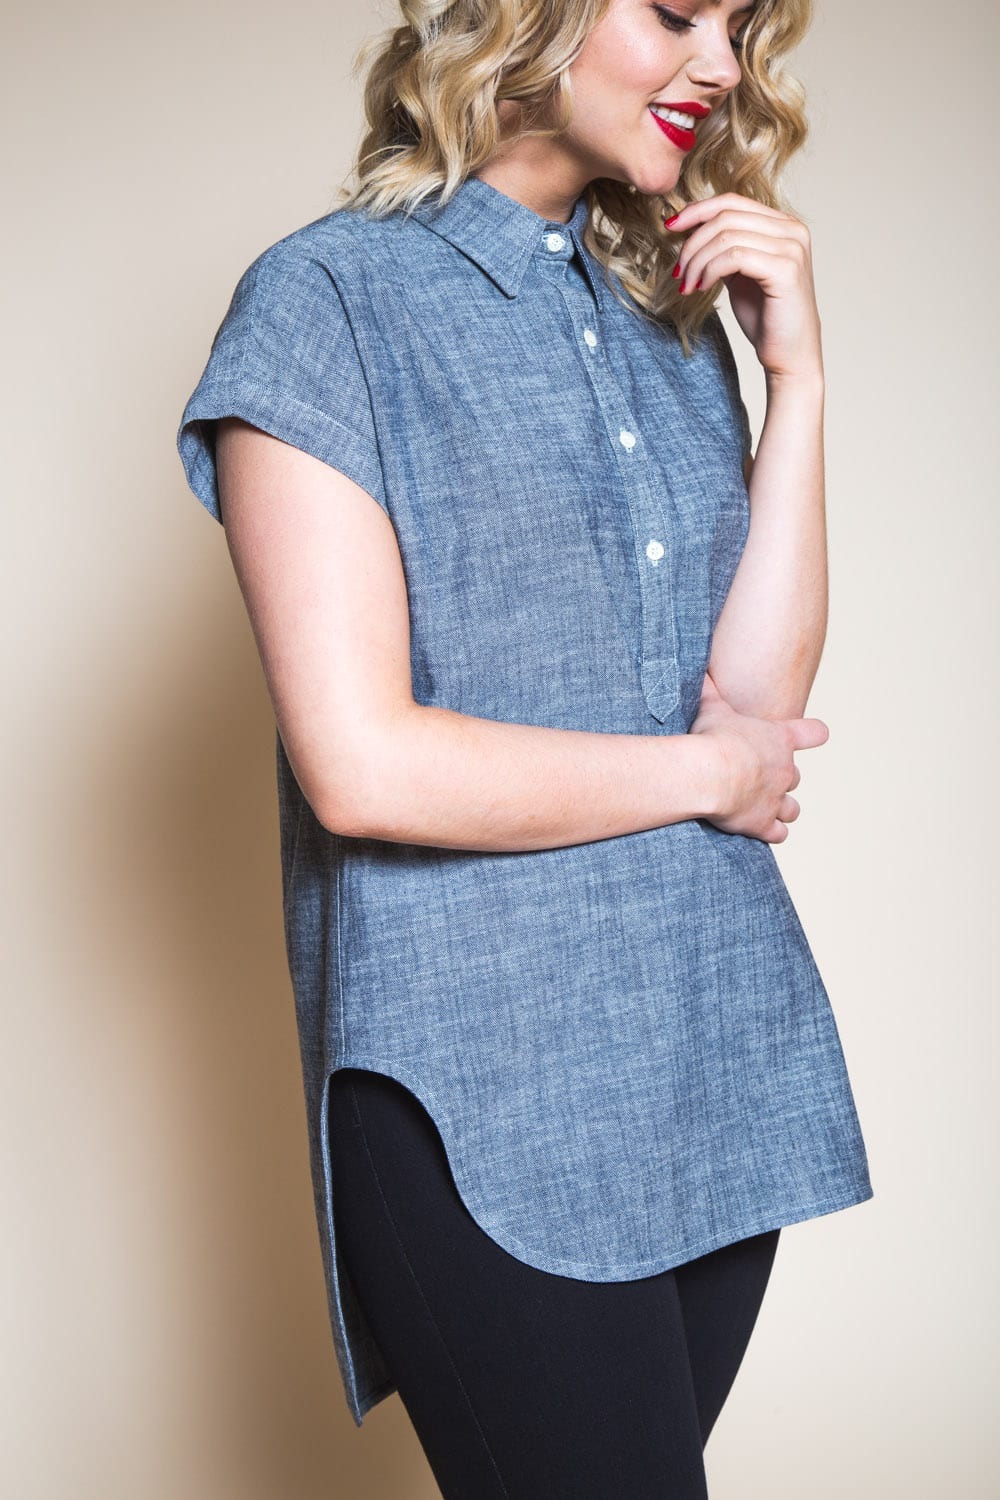 Introducing The Kalle Shirt Shirtdress Pattern Closet